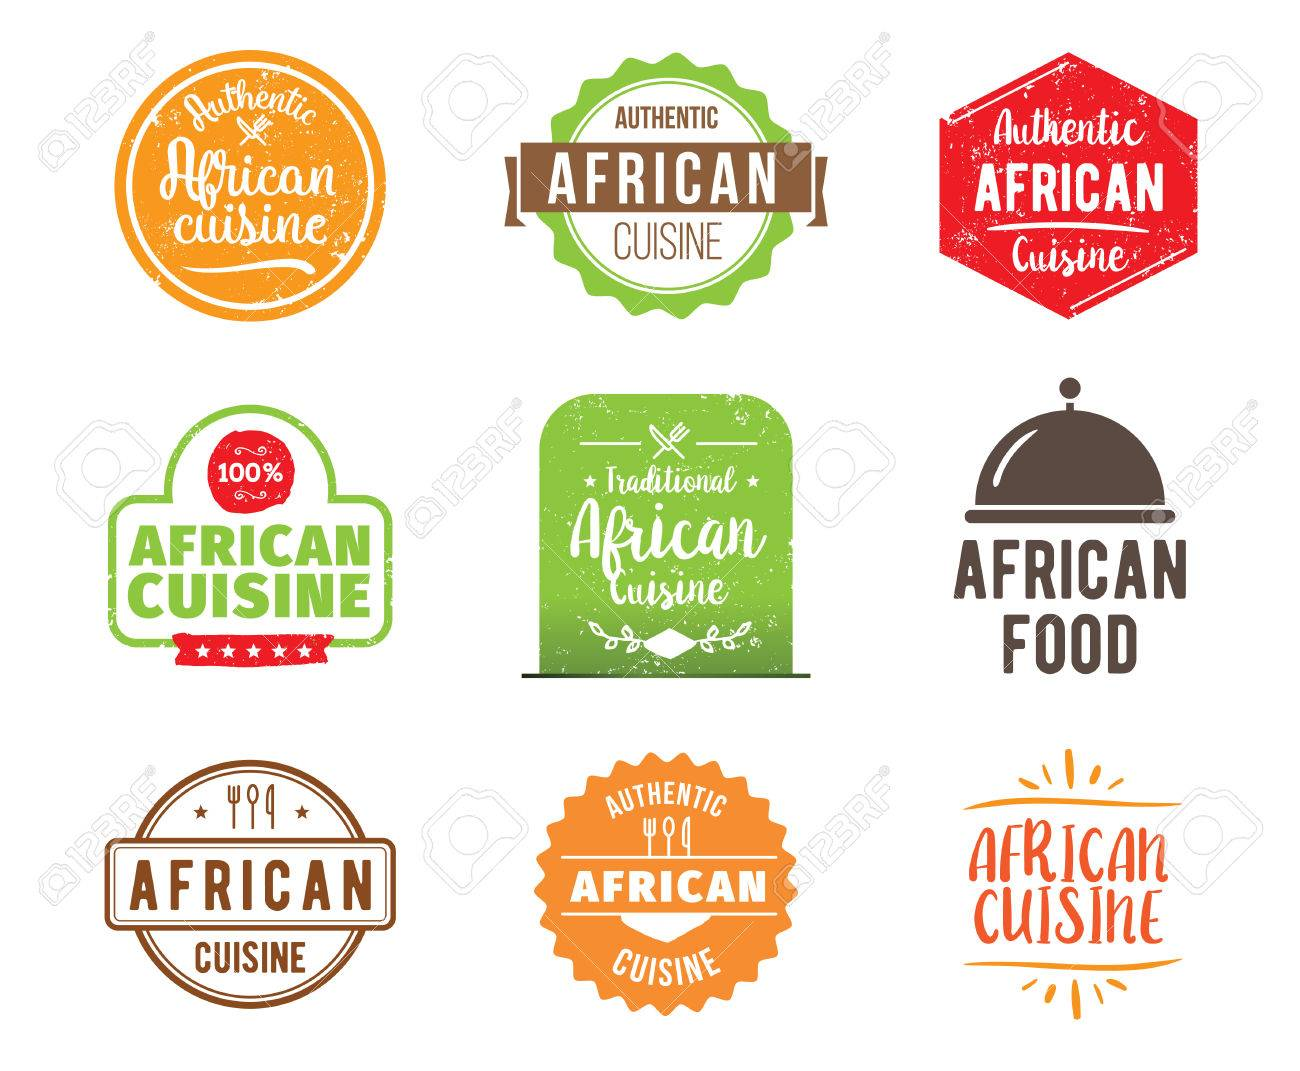 African Cuisine Authentic Traditional Food Typographic Design Royalty Free Cliparts Vectors And Stock Illustration Image 58461823